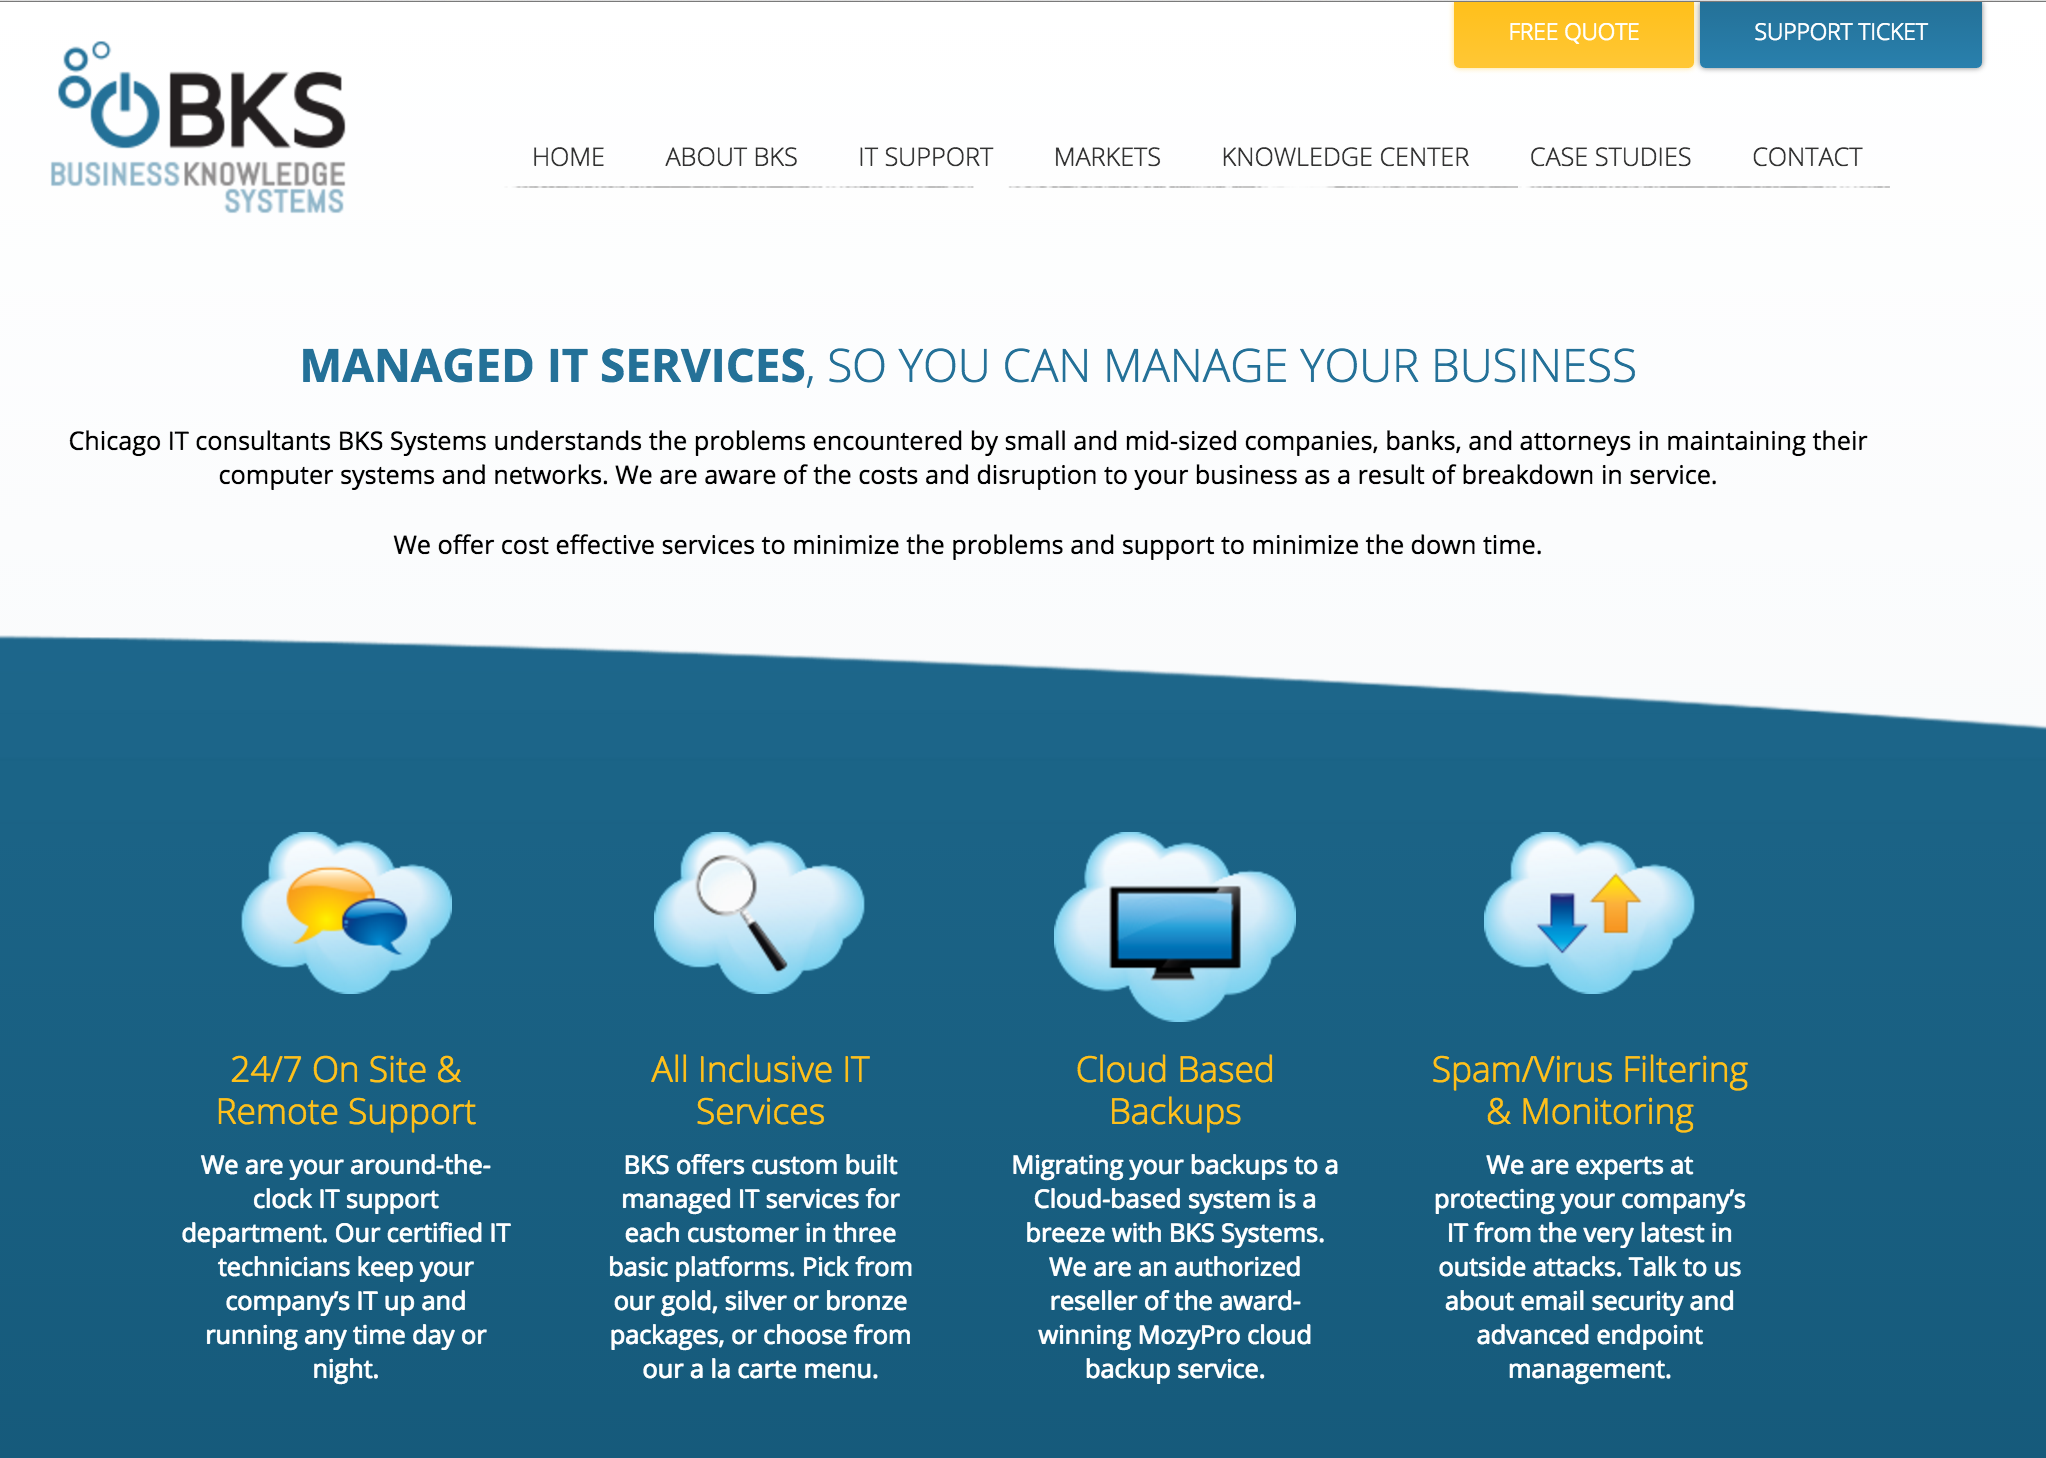 BKS Systems launches new website